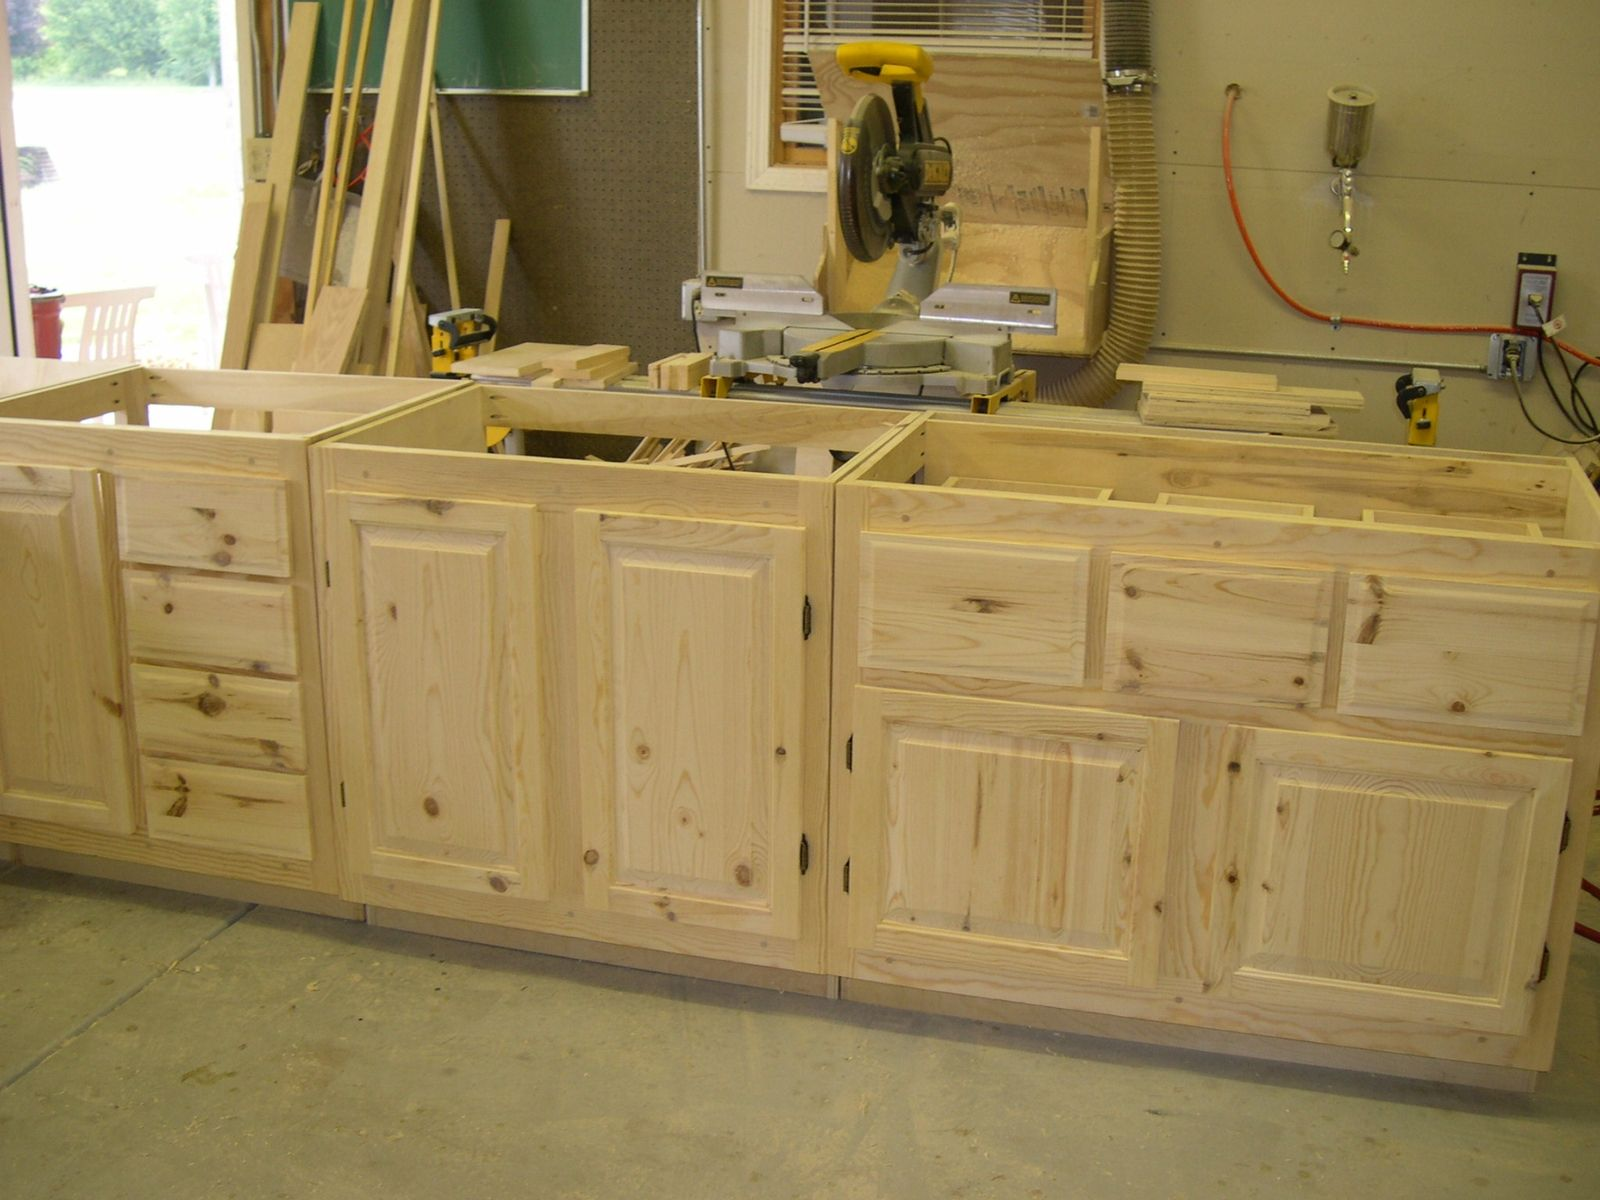 custom made knotty pine cabinets - Knotty Pine Kitchen Cabinets